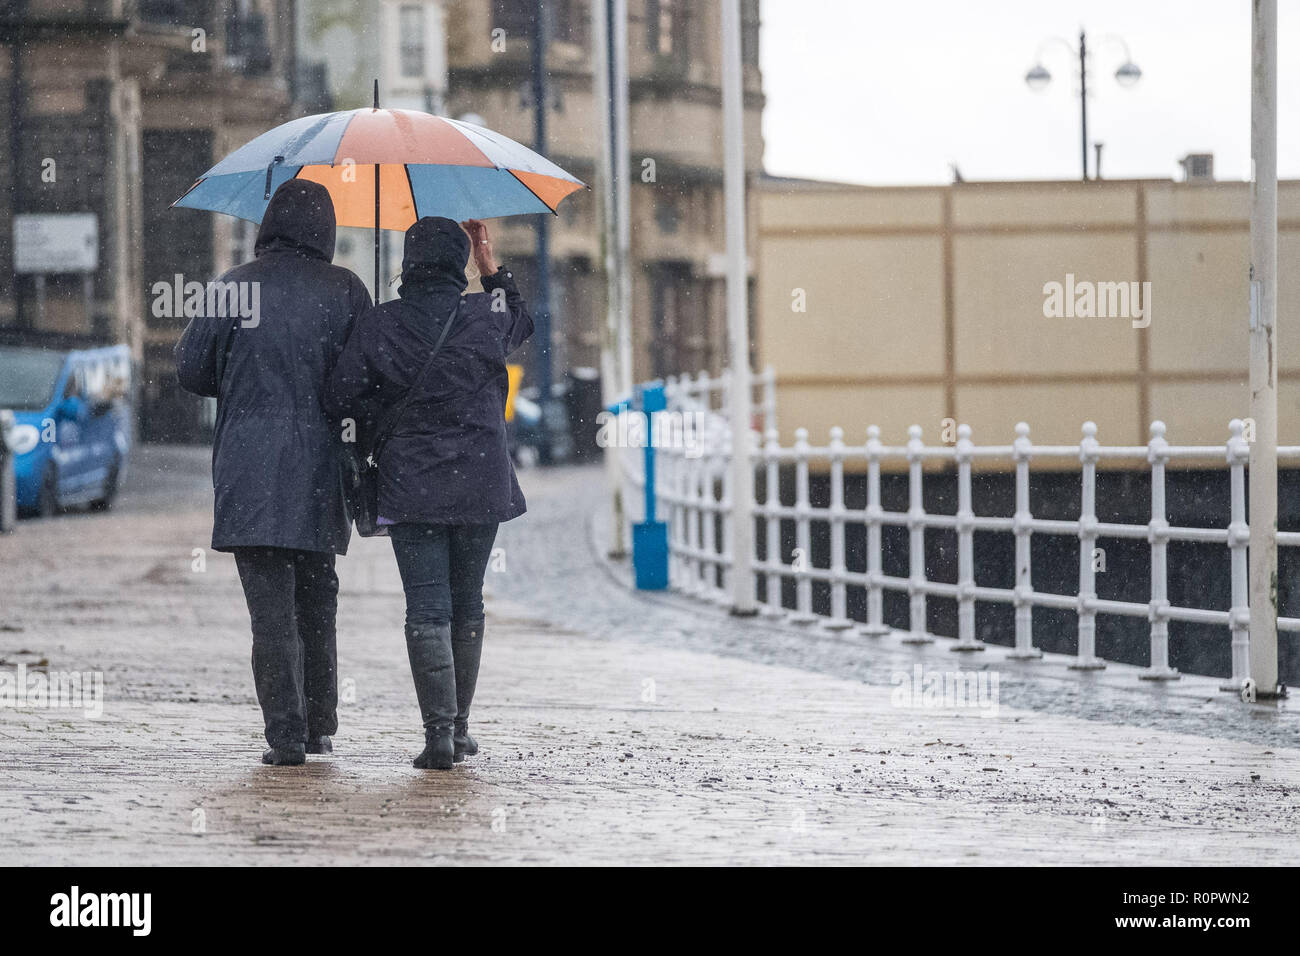 Aberystwyth, Wales, UK. 7th November, 2018.   UK Weather: People walking in the rain on a  very wet , but mild, morning in Aberystwyth. The Met Office has issued a yellow warning for rain and floods covering much of south and west wales this morning, with a further warning for more rain and gale force winds issued for the same area on Friday as well.   Photo credit: Keith Morris/ Alamy Live News - Stock Image